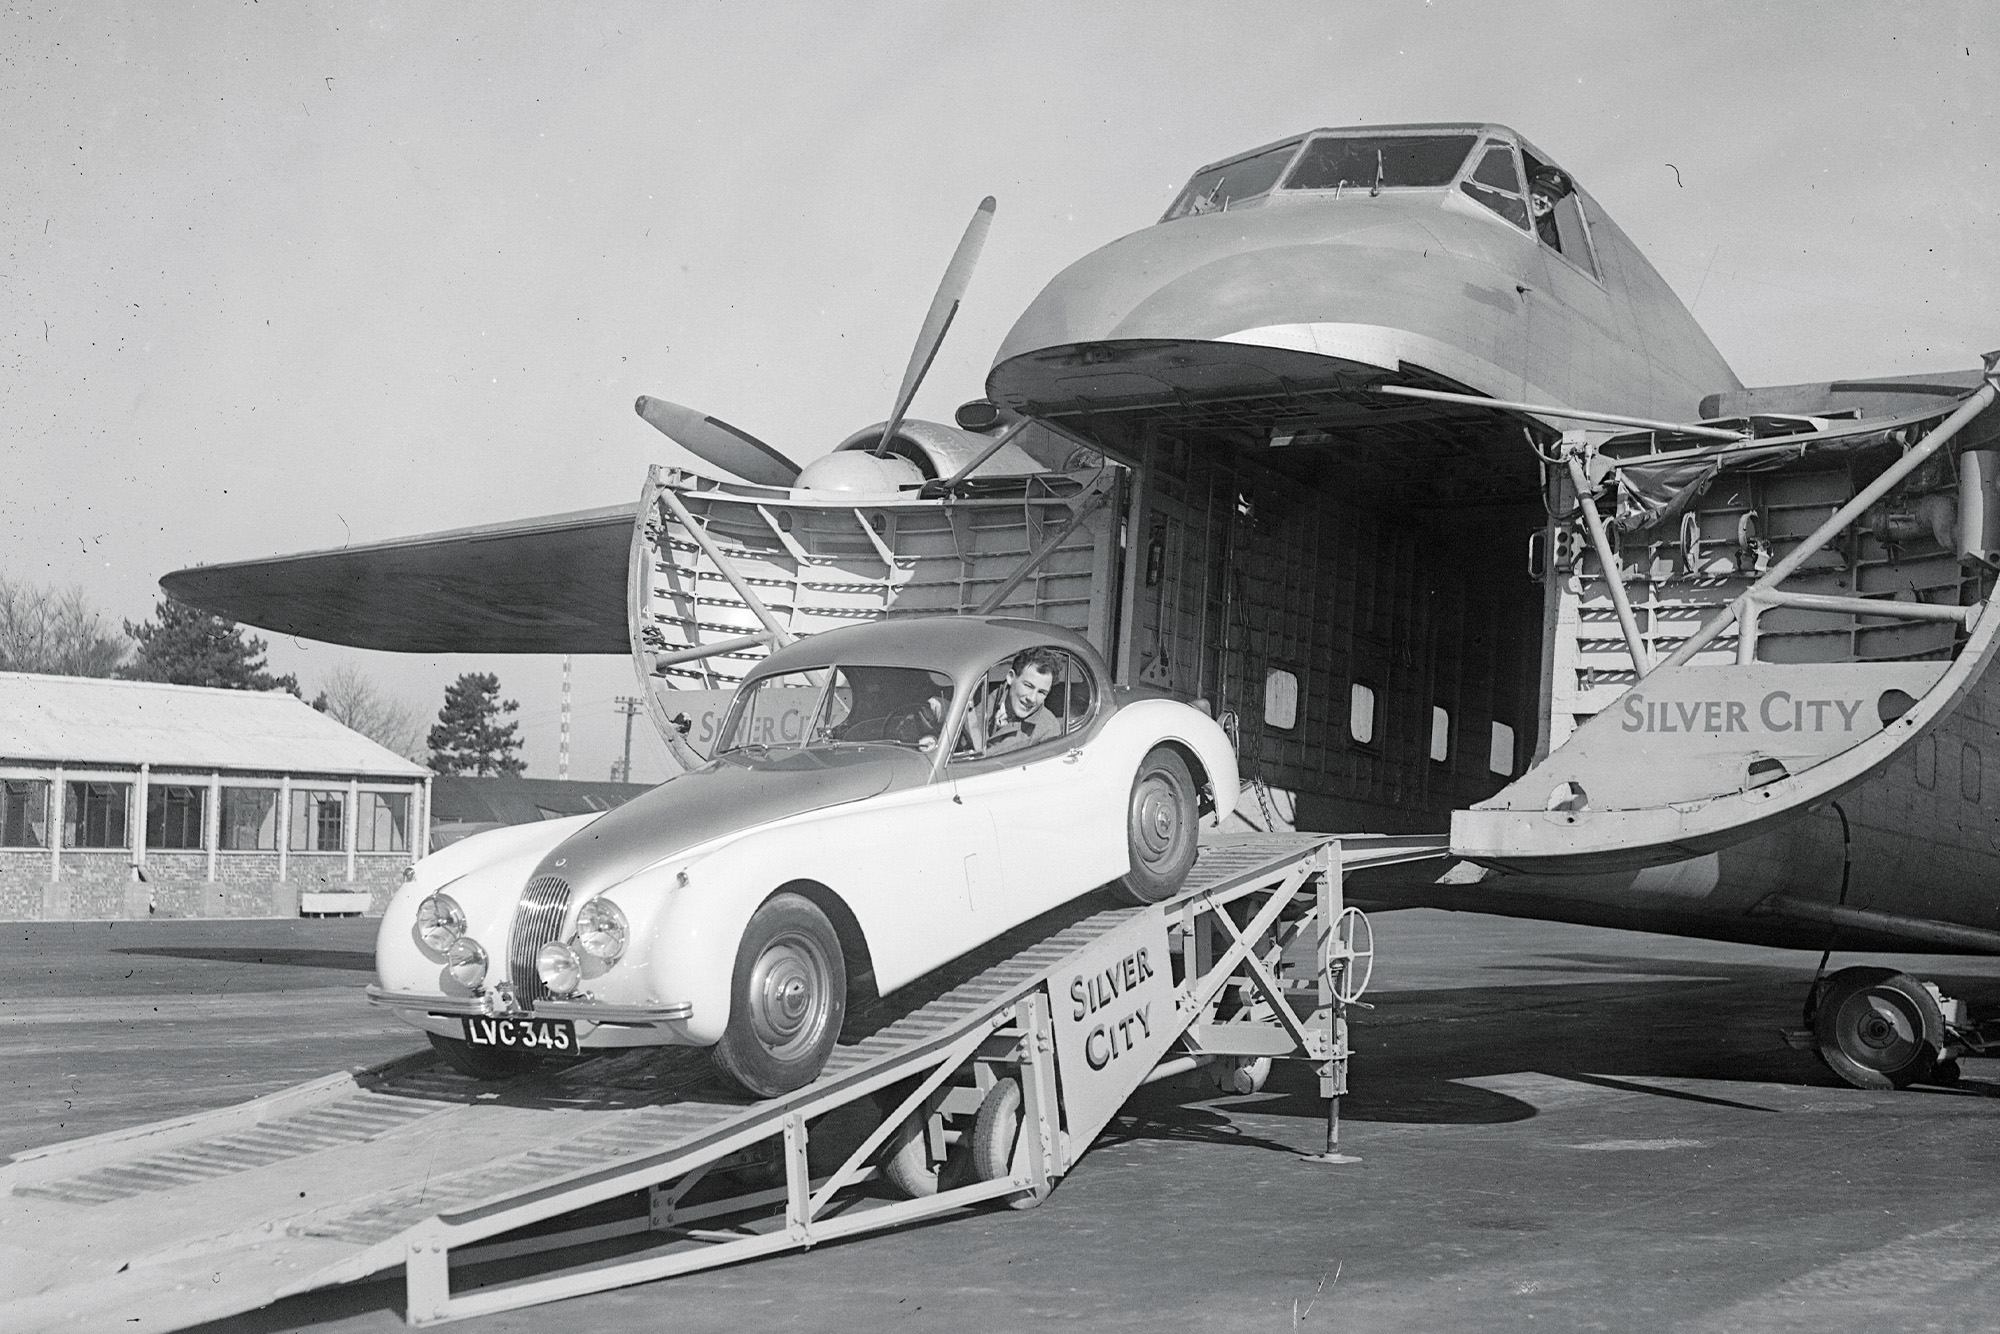 Stirling Moss drives a Jaguar XK120 out of the nose of a cargo plane